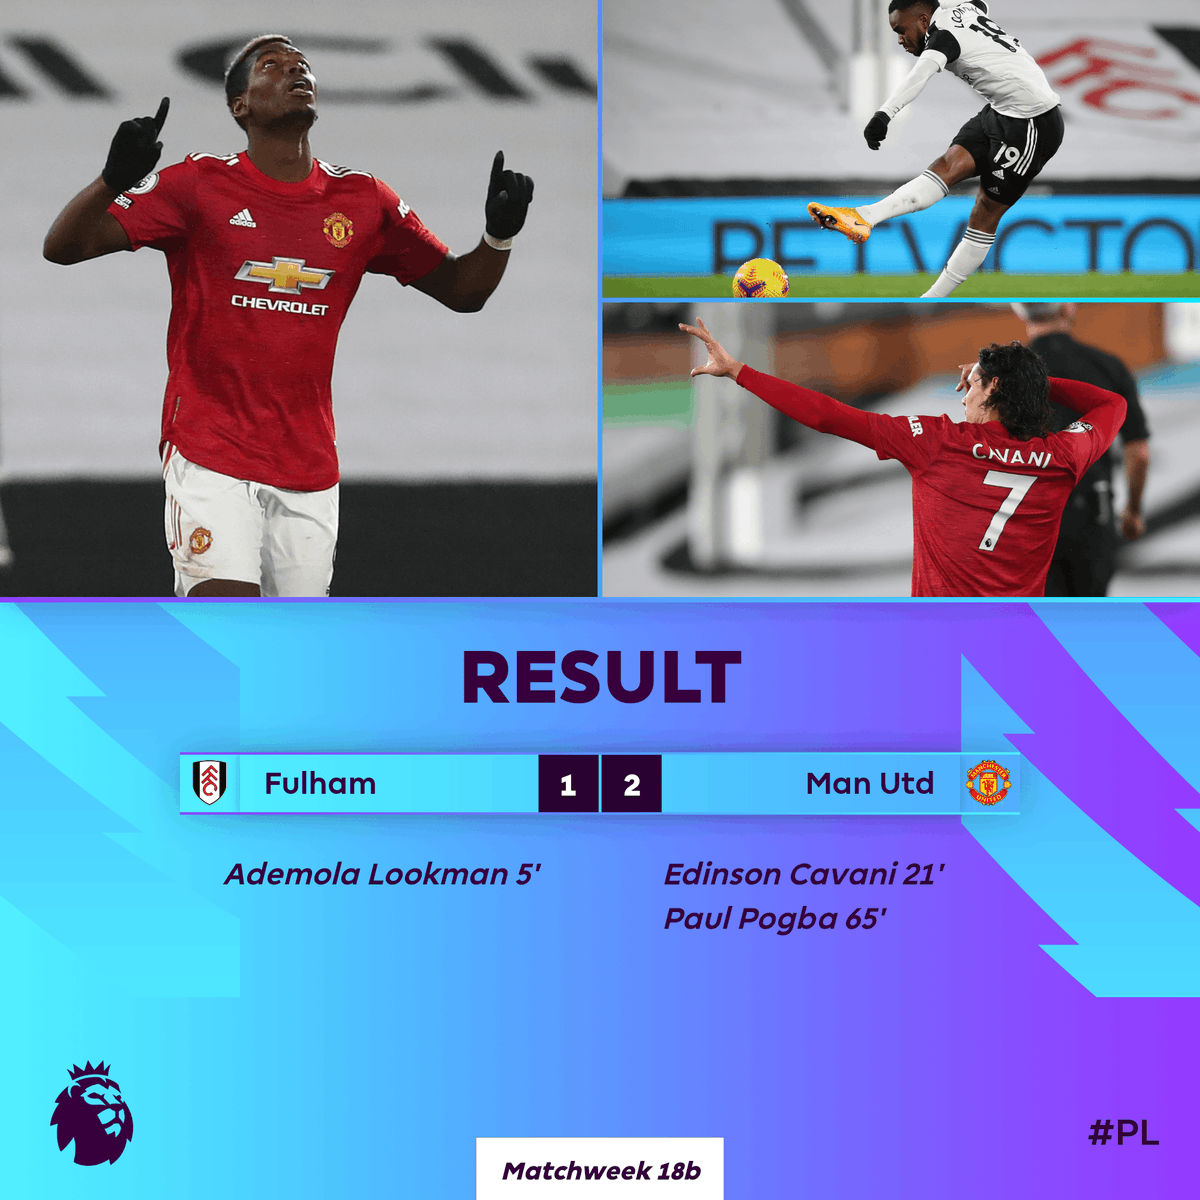 Man Utd come from behind to win in the #PL for the 7️⃣th time this season 👏  #FULMUN